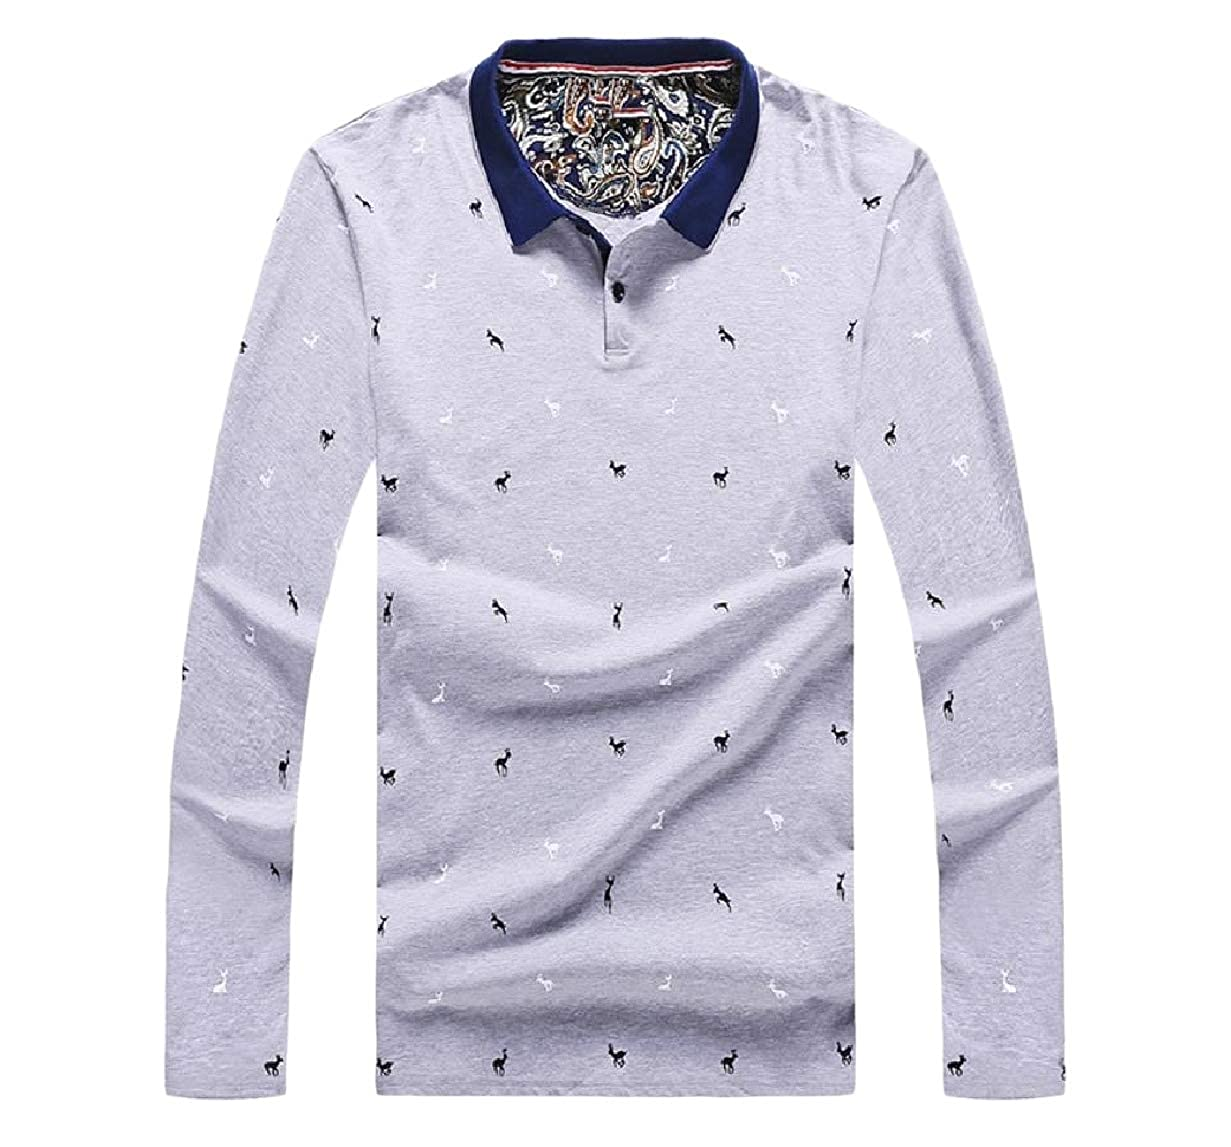 Tootless-Men Floral Printed Classic Fitness Fall Long Sleeve Polo Shirt